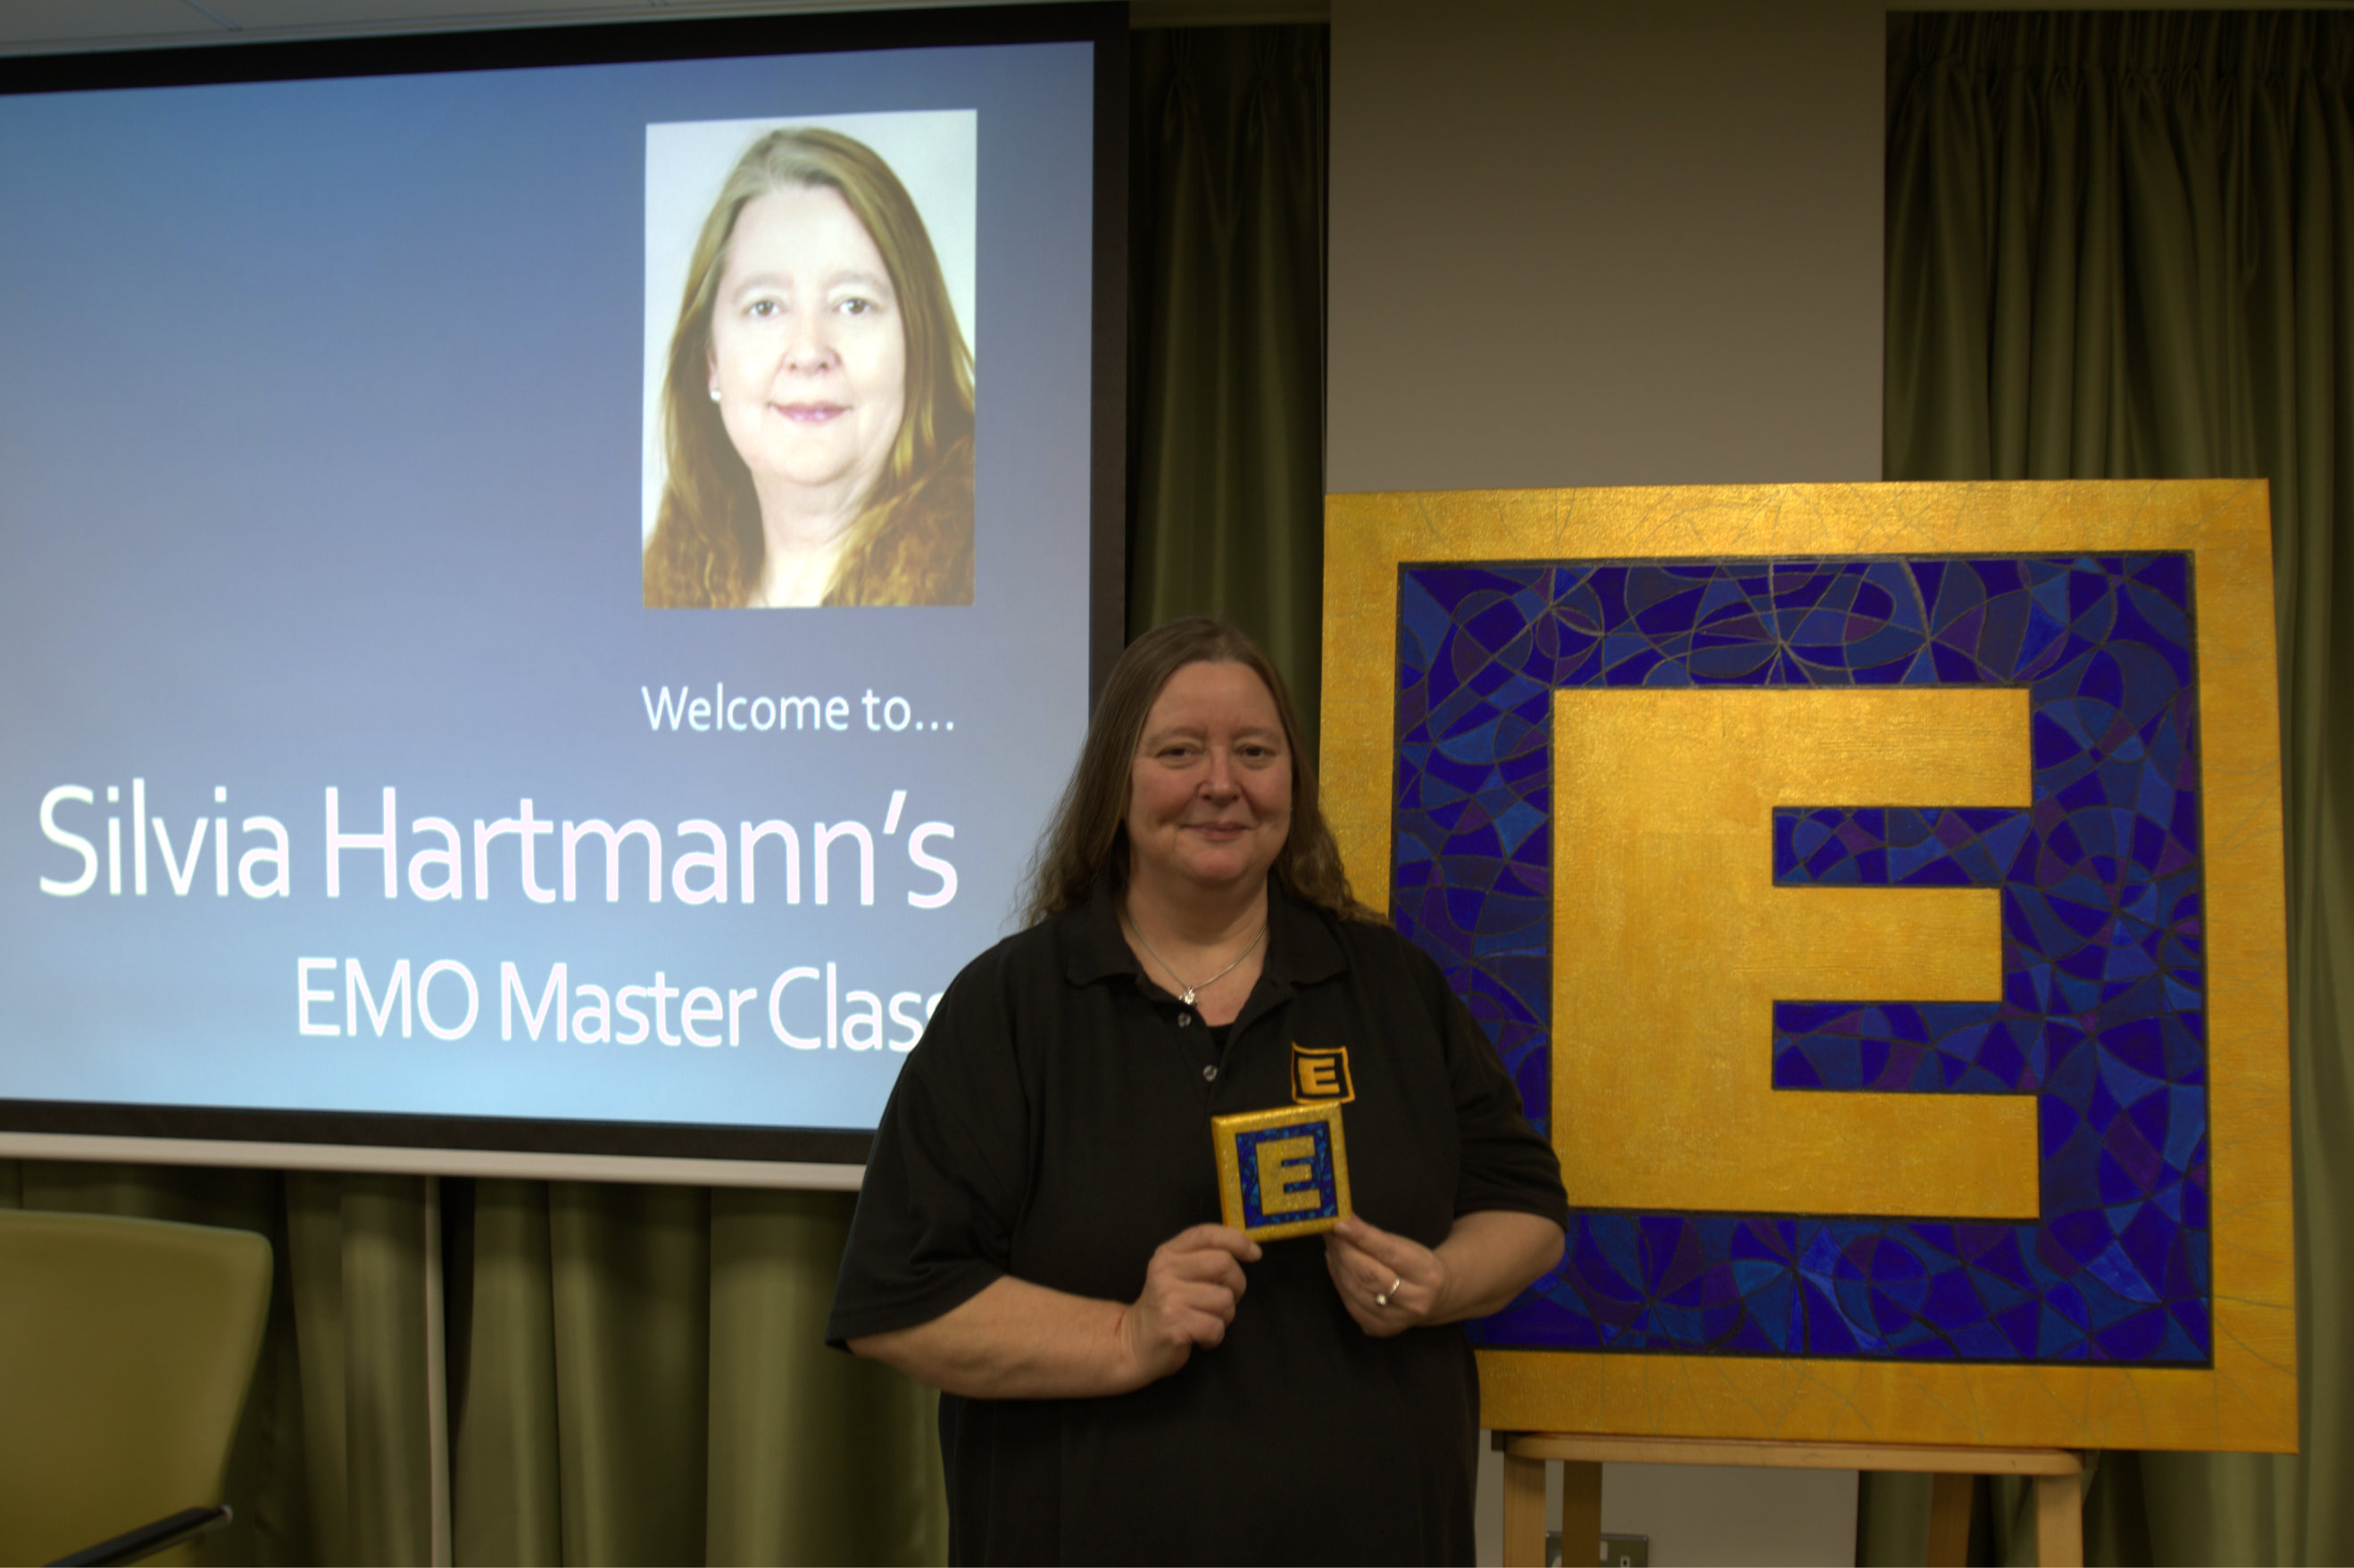 Silvia Hartmann with Big E and Little E paintings before the EMO Masterclass